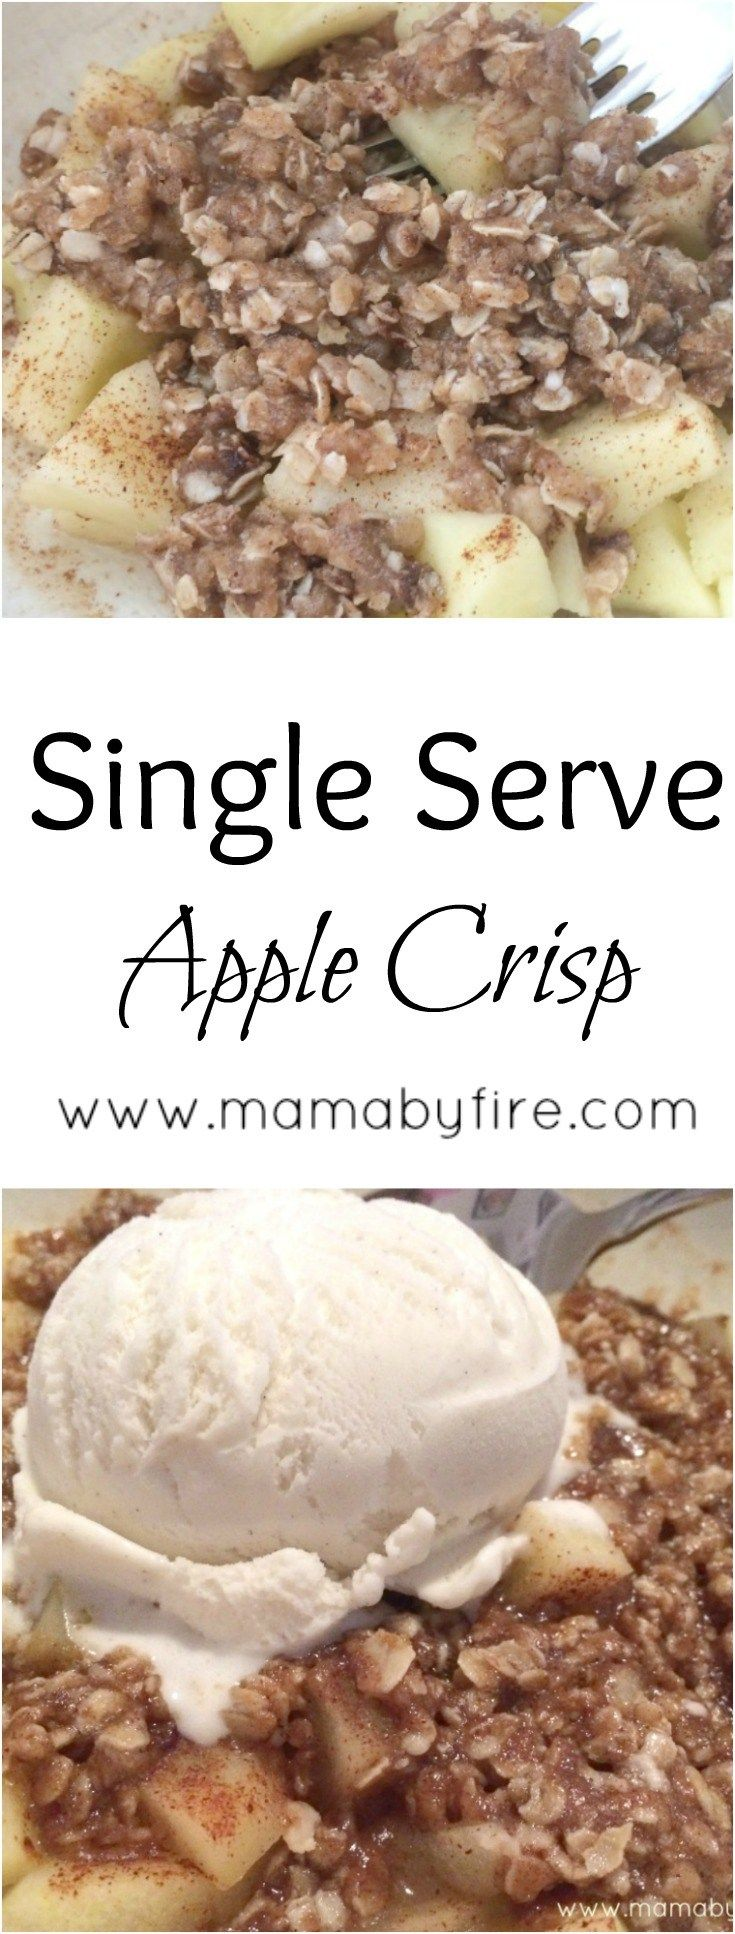 This single serving of apple crisp is a delicious, fast dessert for one (or maybe even two) people!